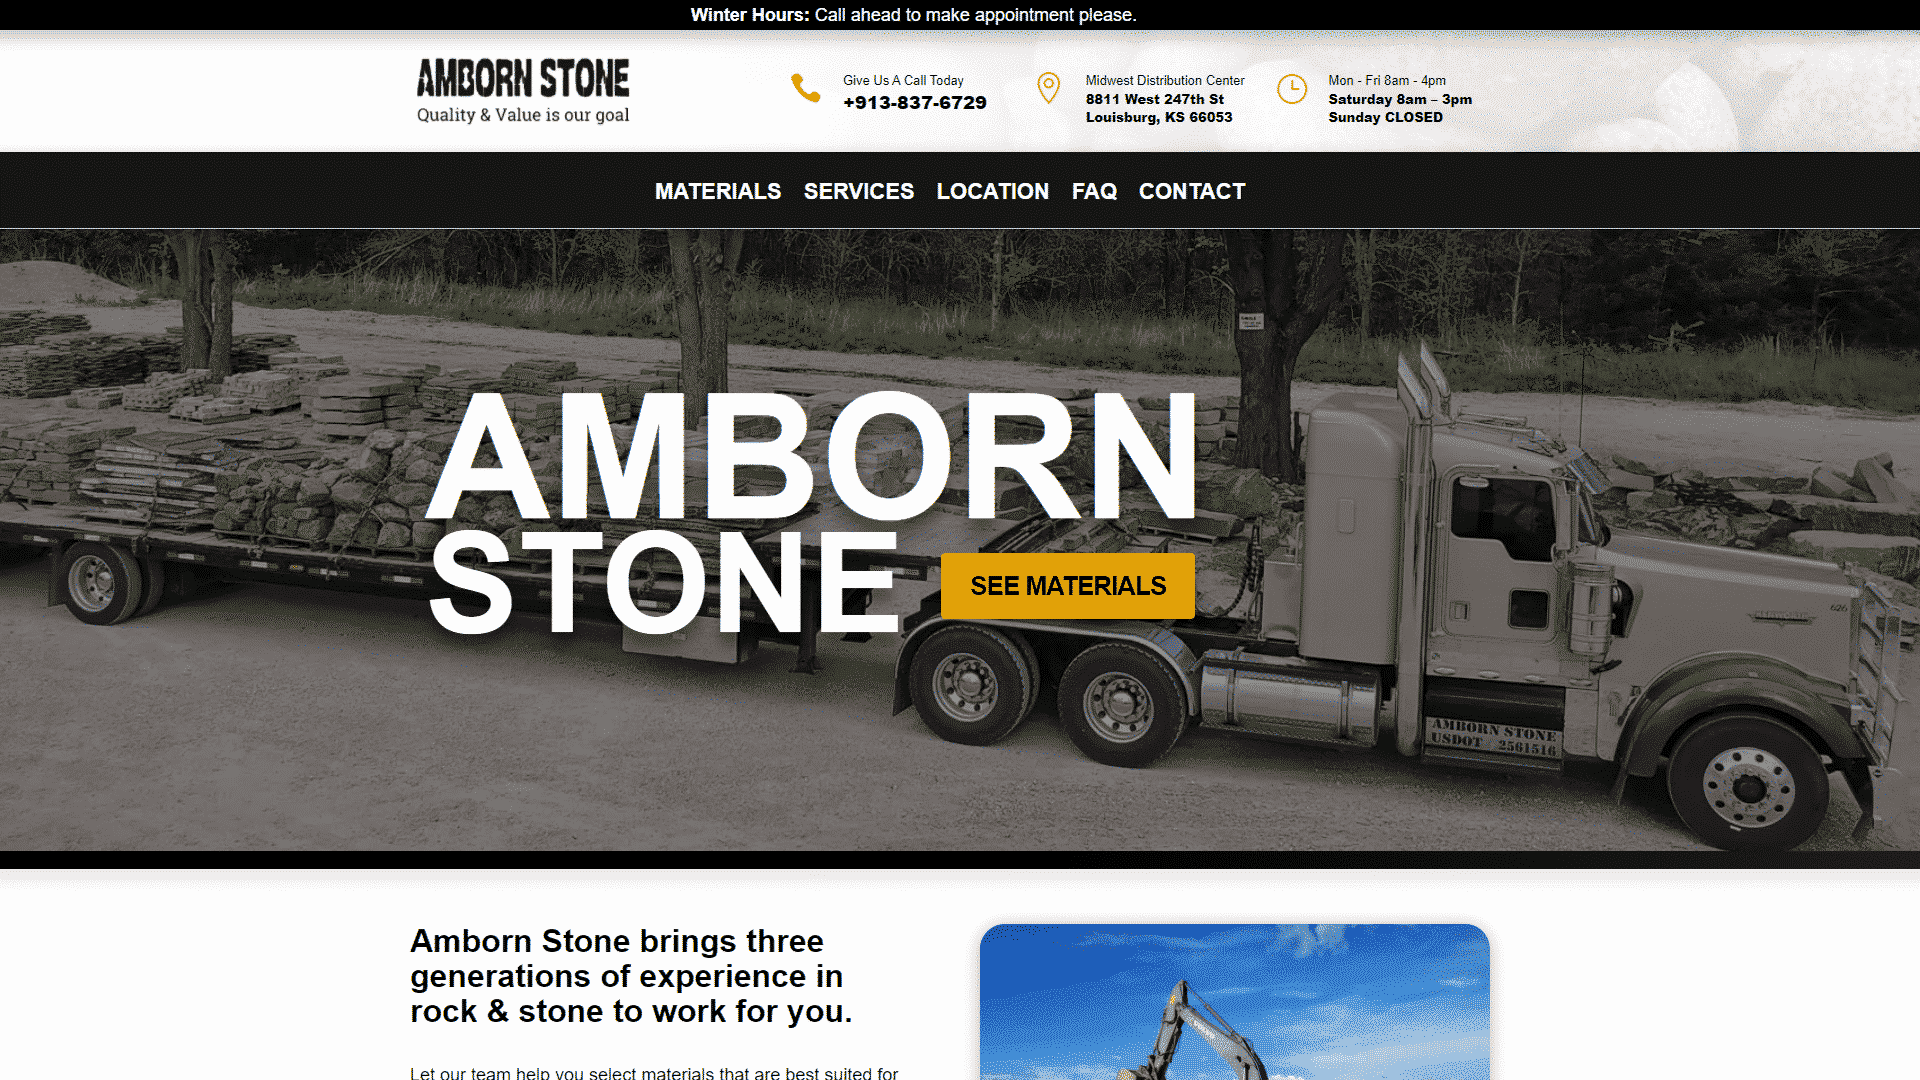 MKS Web Design created the website for Amborn Stone